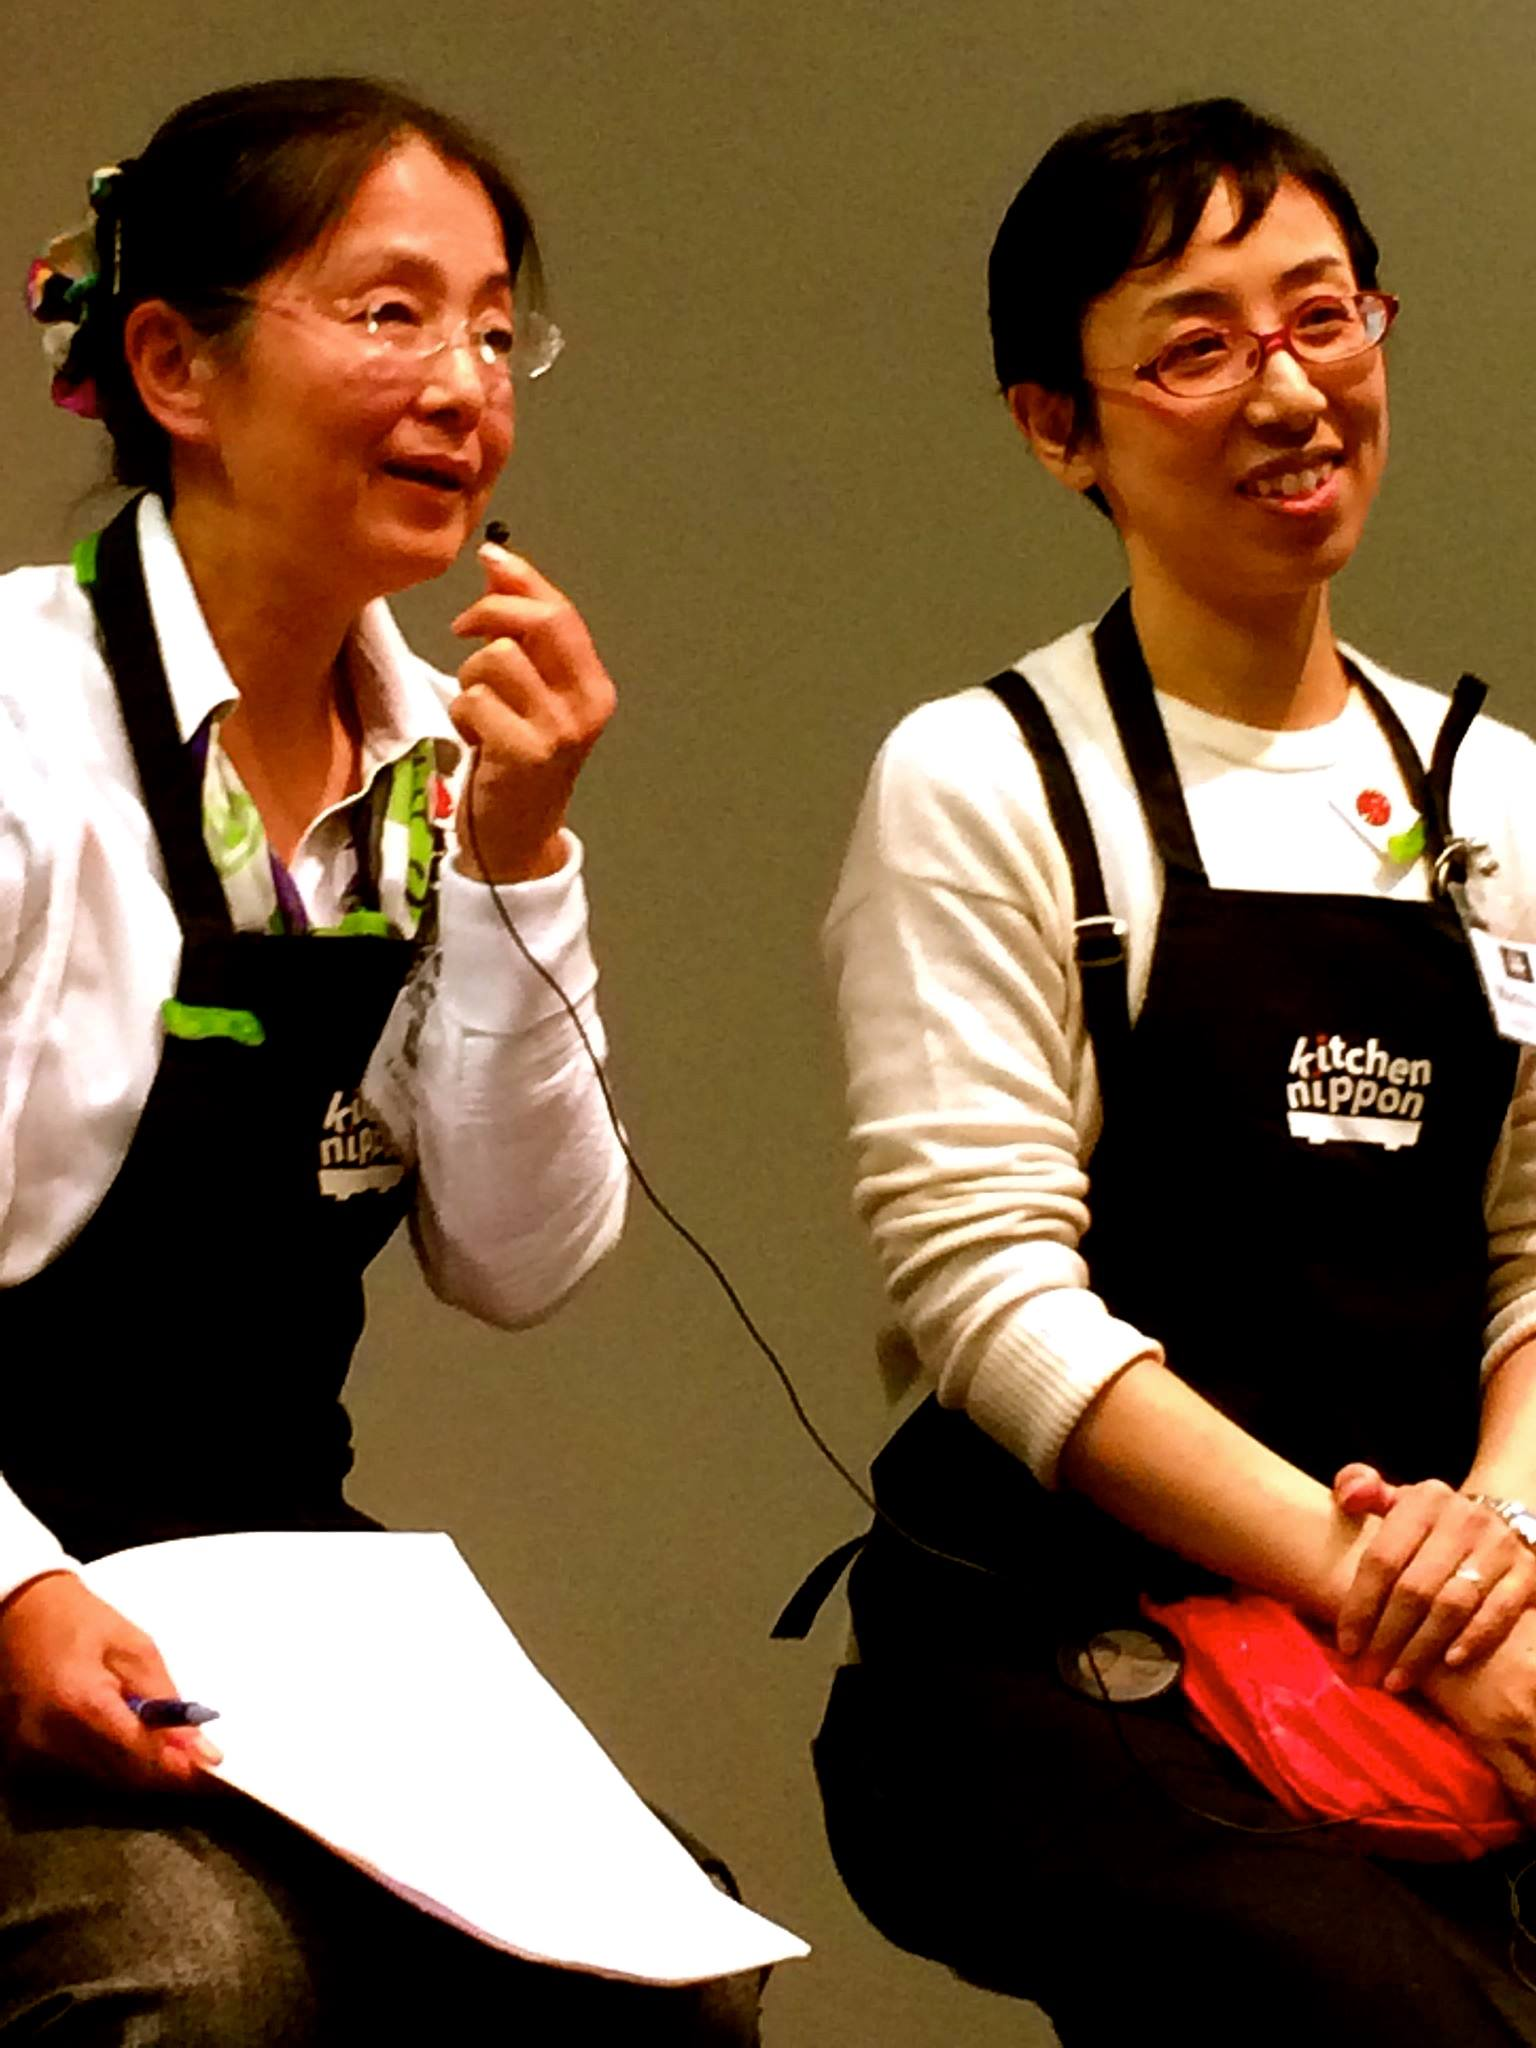 Kaoru Shibata (left) and Machiko Tateno (right) of Kitchen Nippon Tokyo during the panel. Photo by Earnest Migaki.